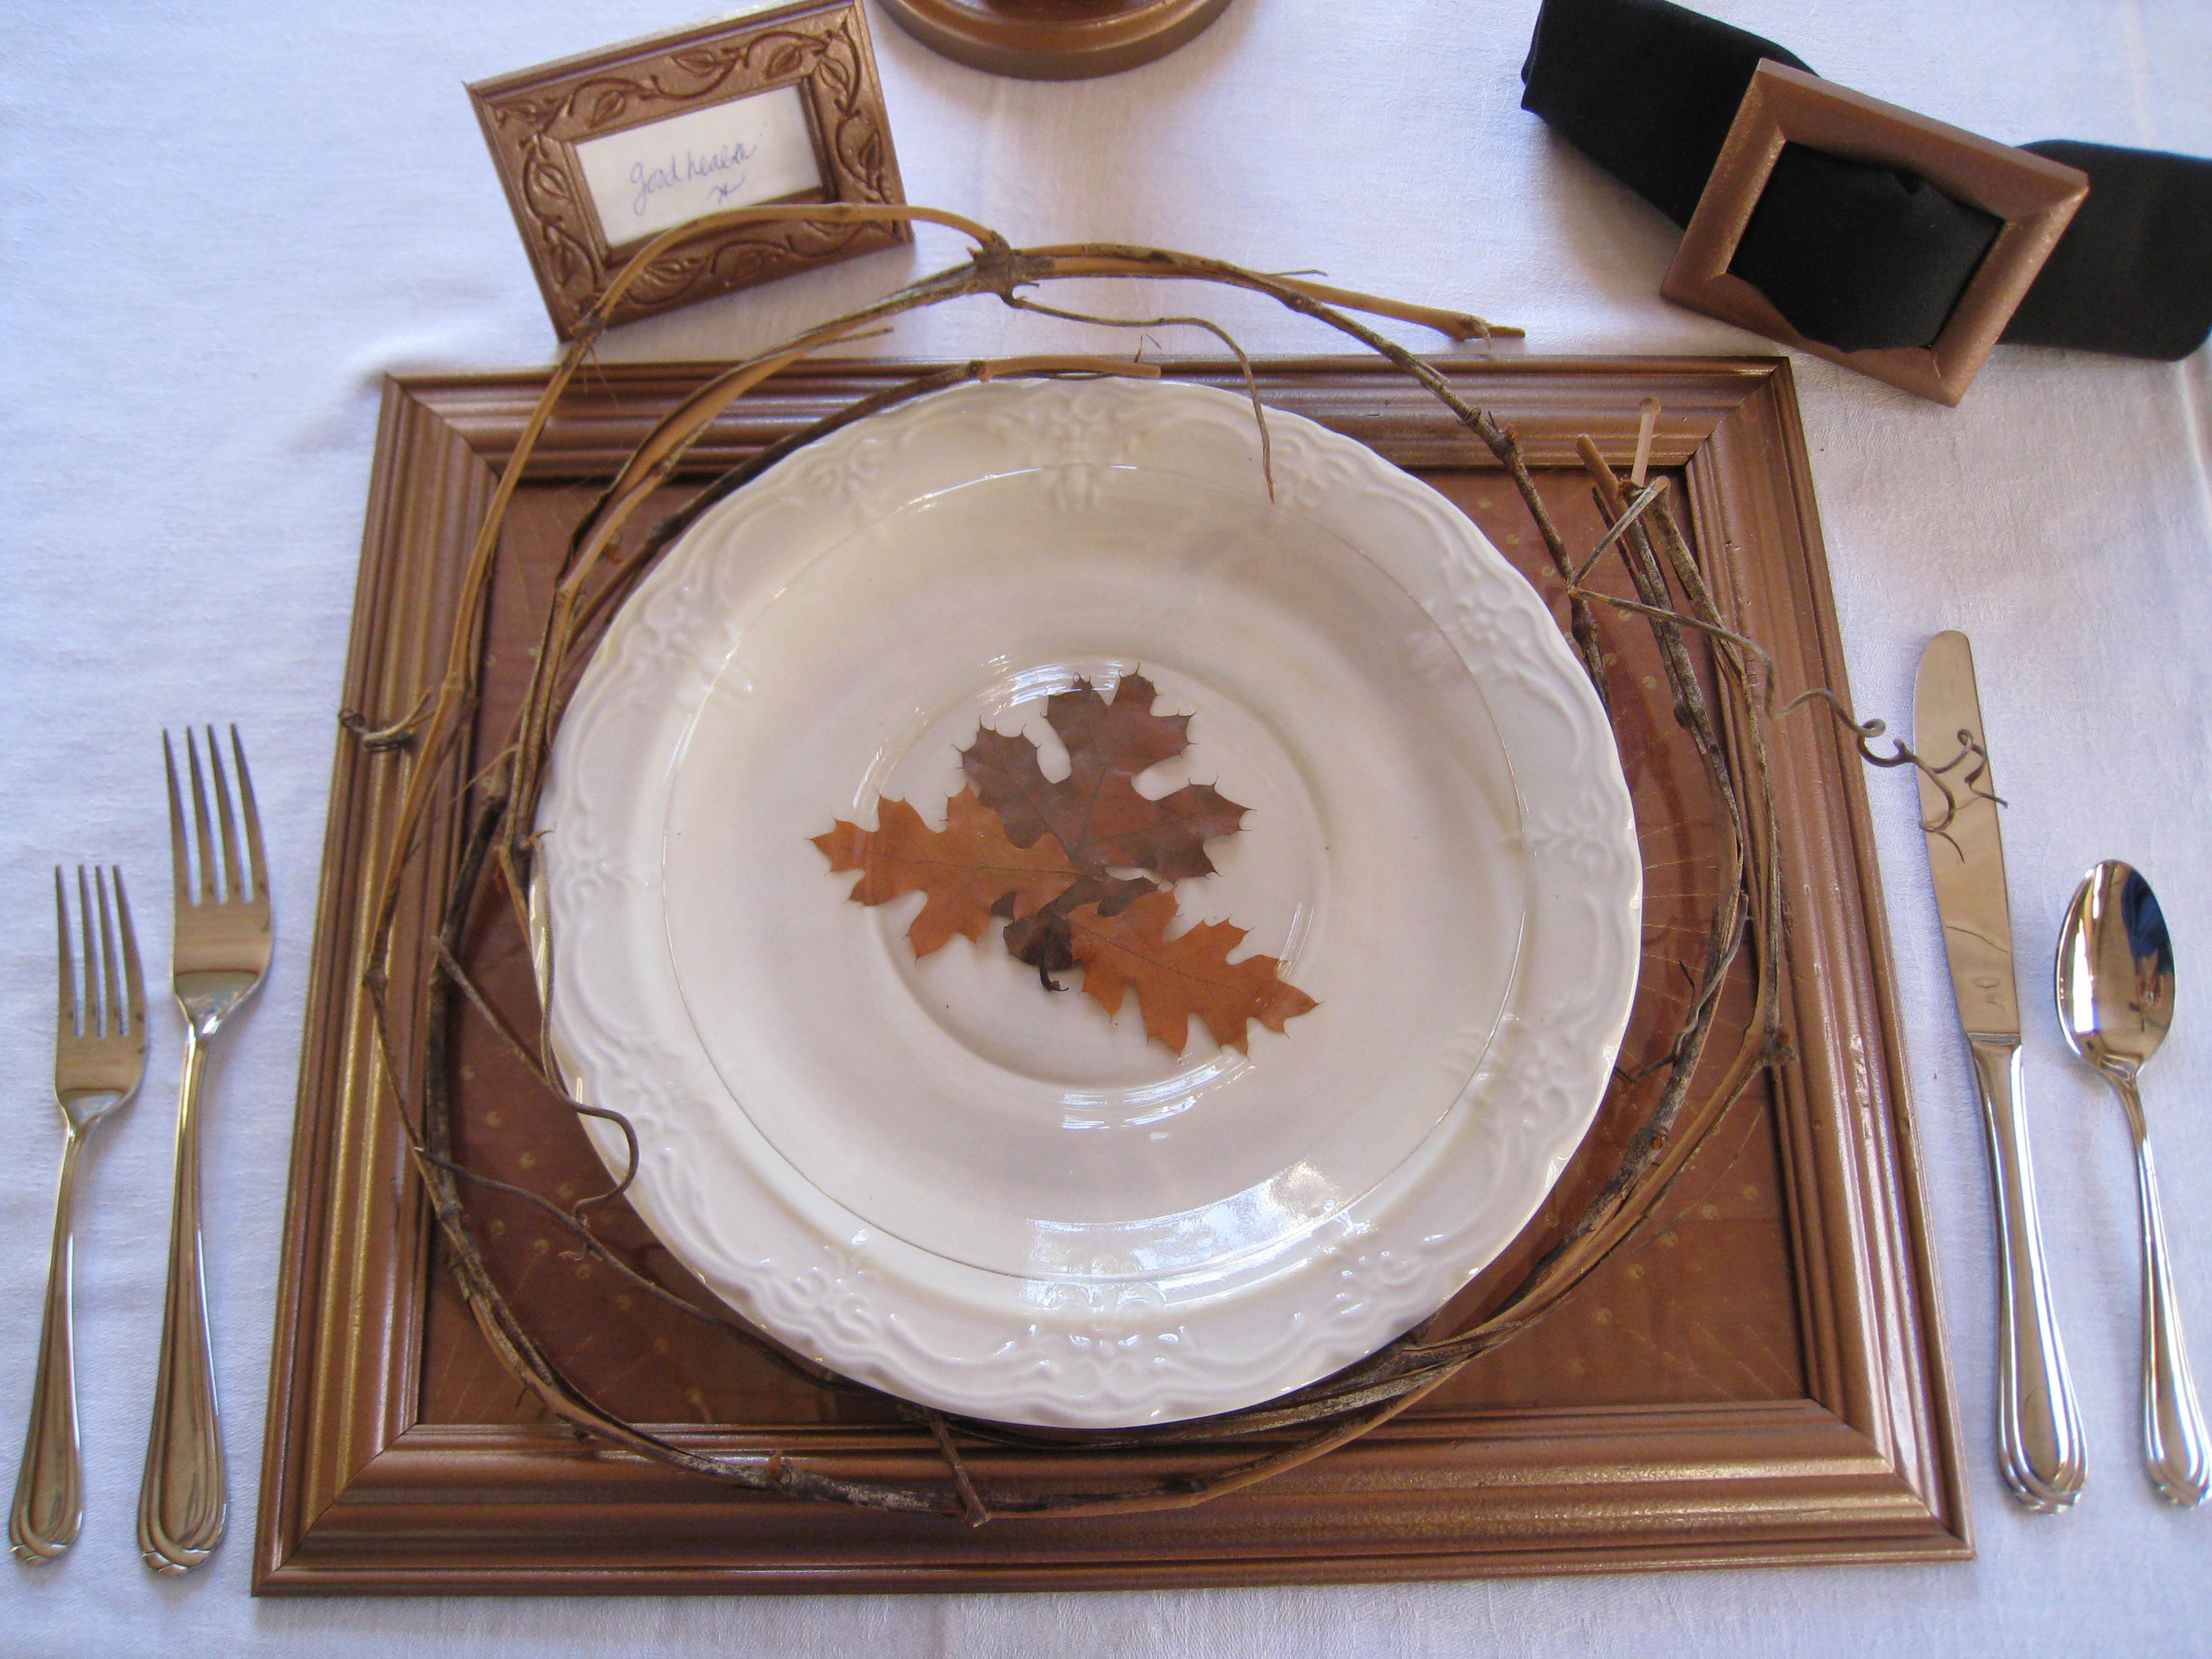 Set a beautiful, rustic table this Thanksgiving